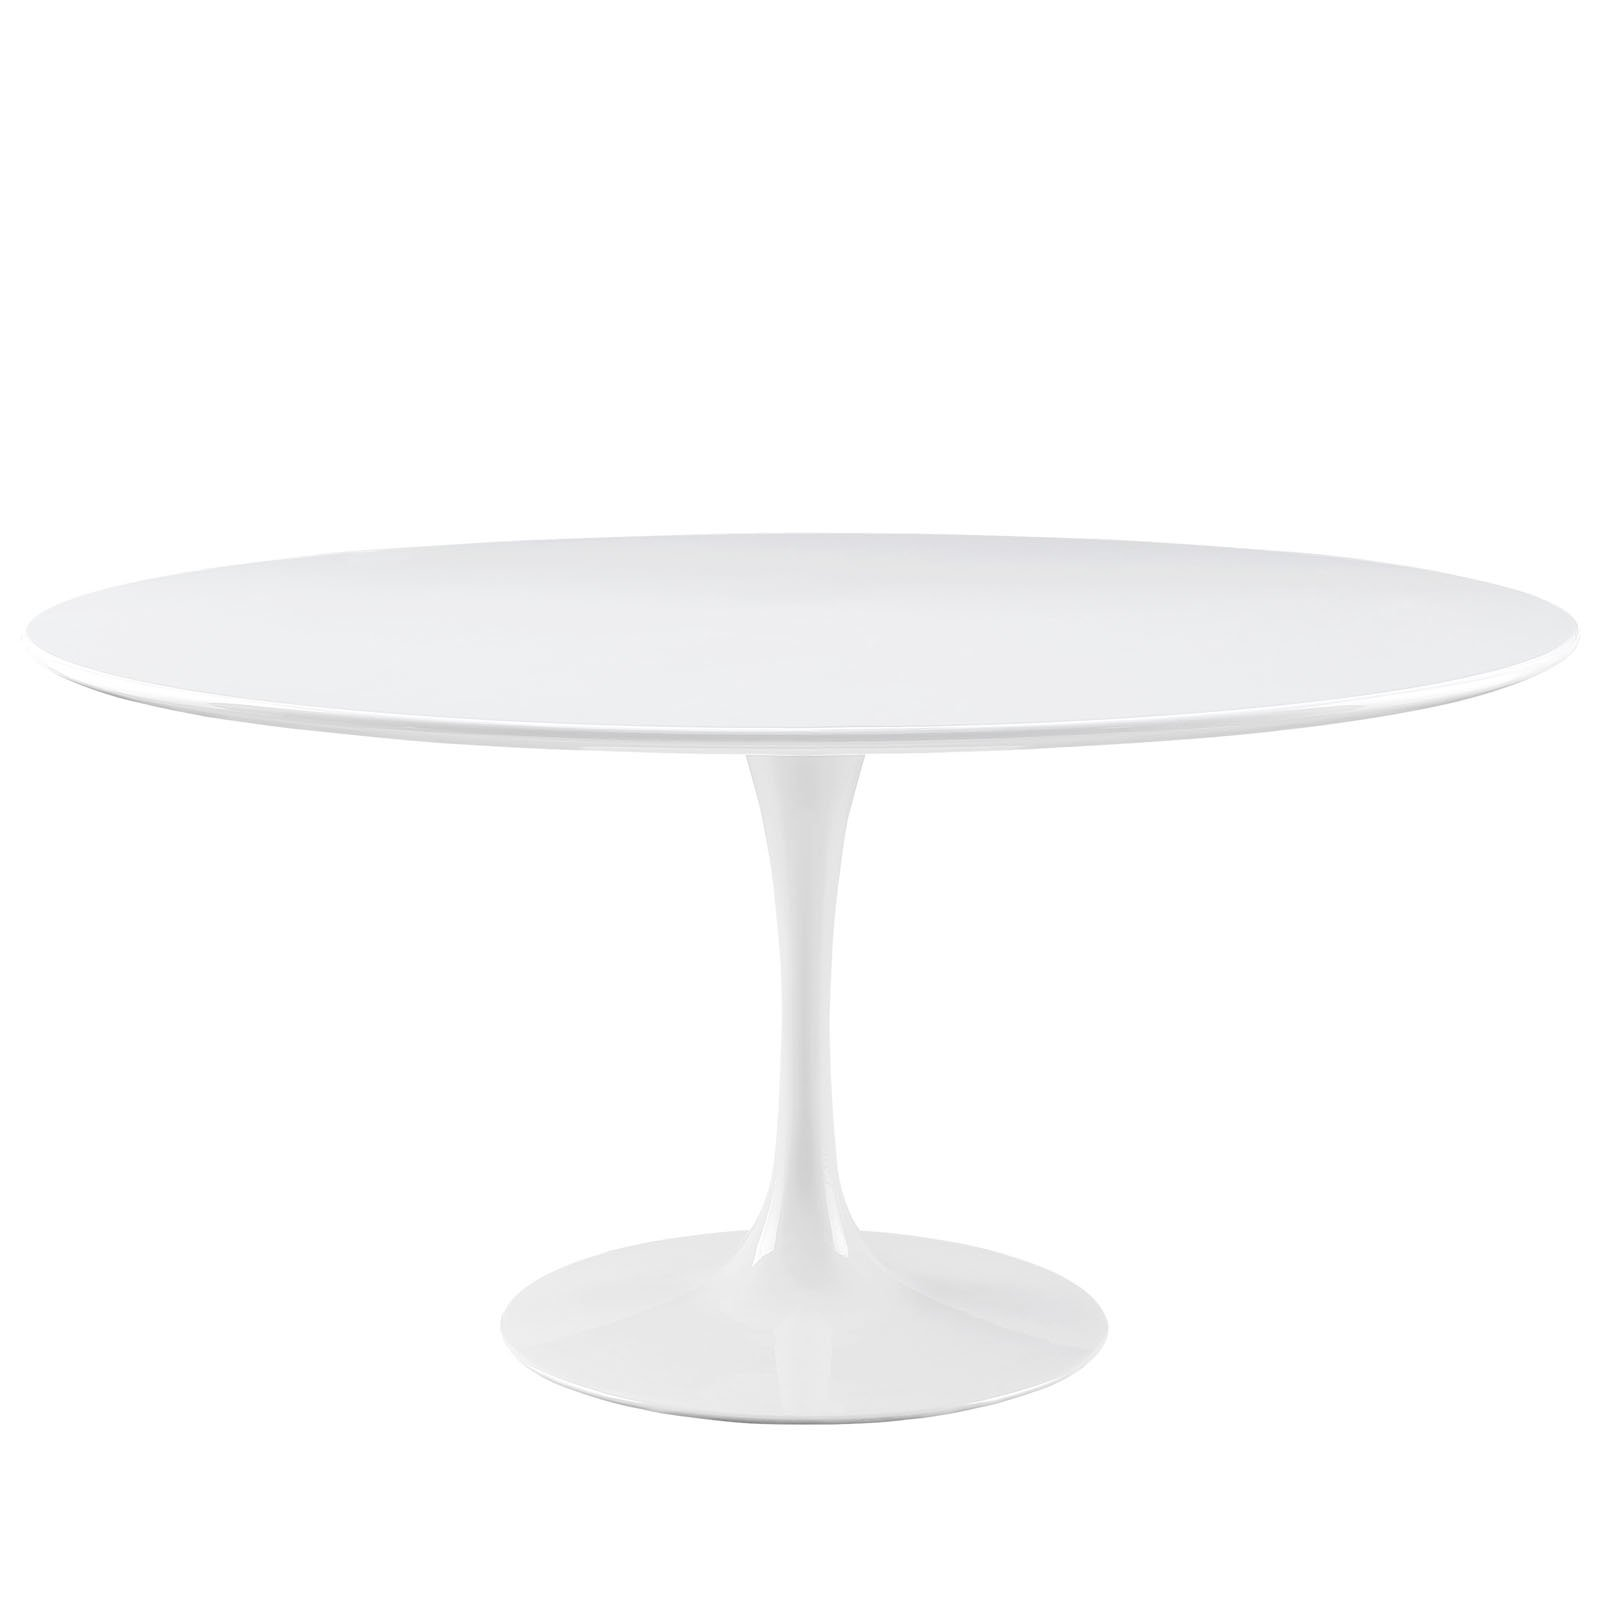 Modway Lippa 60'' Mid-Century Modern Kitchen and Dining Table with Round Top and Pedestal Base in White by Modway